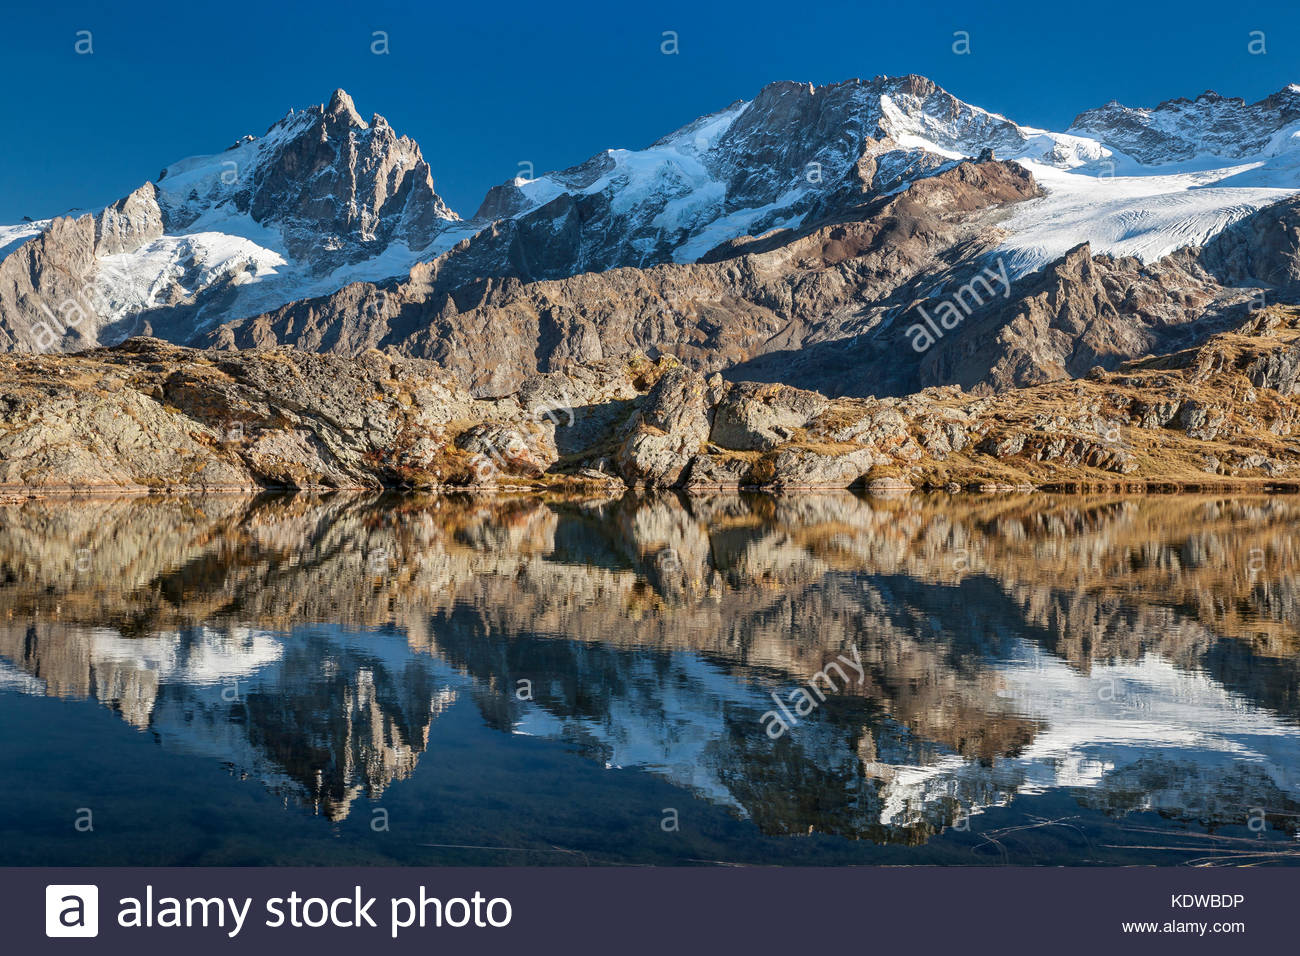 lake-lri-reflecting-la-meije-peak-in-ois